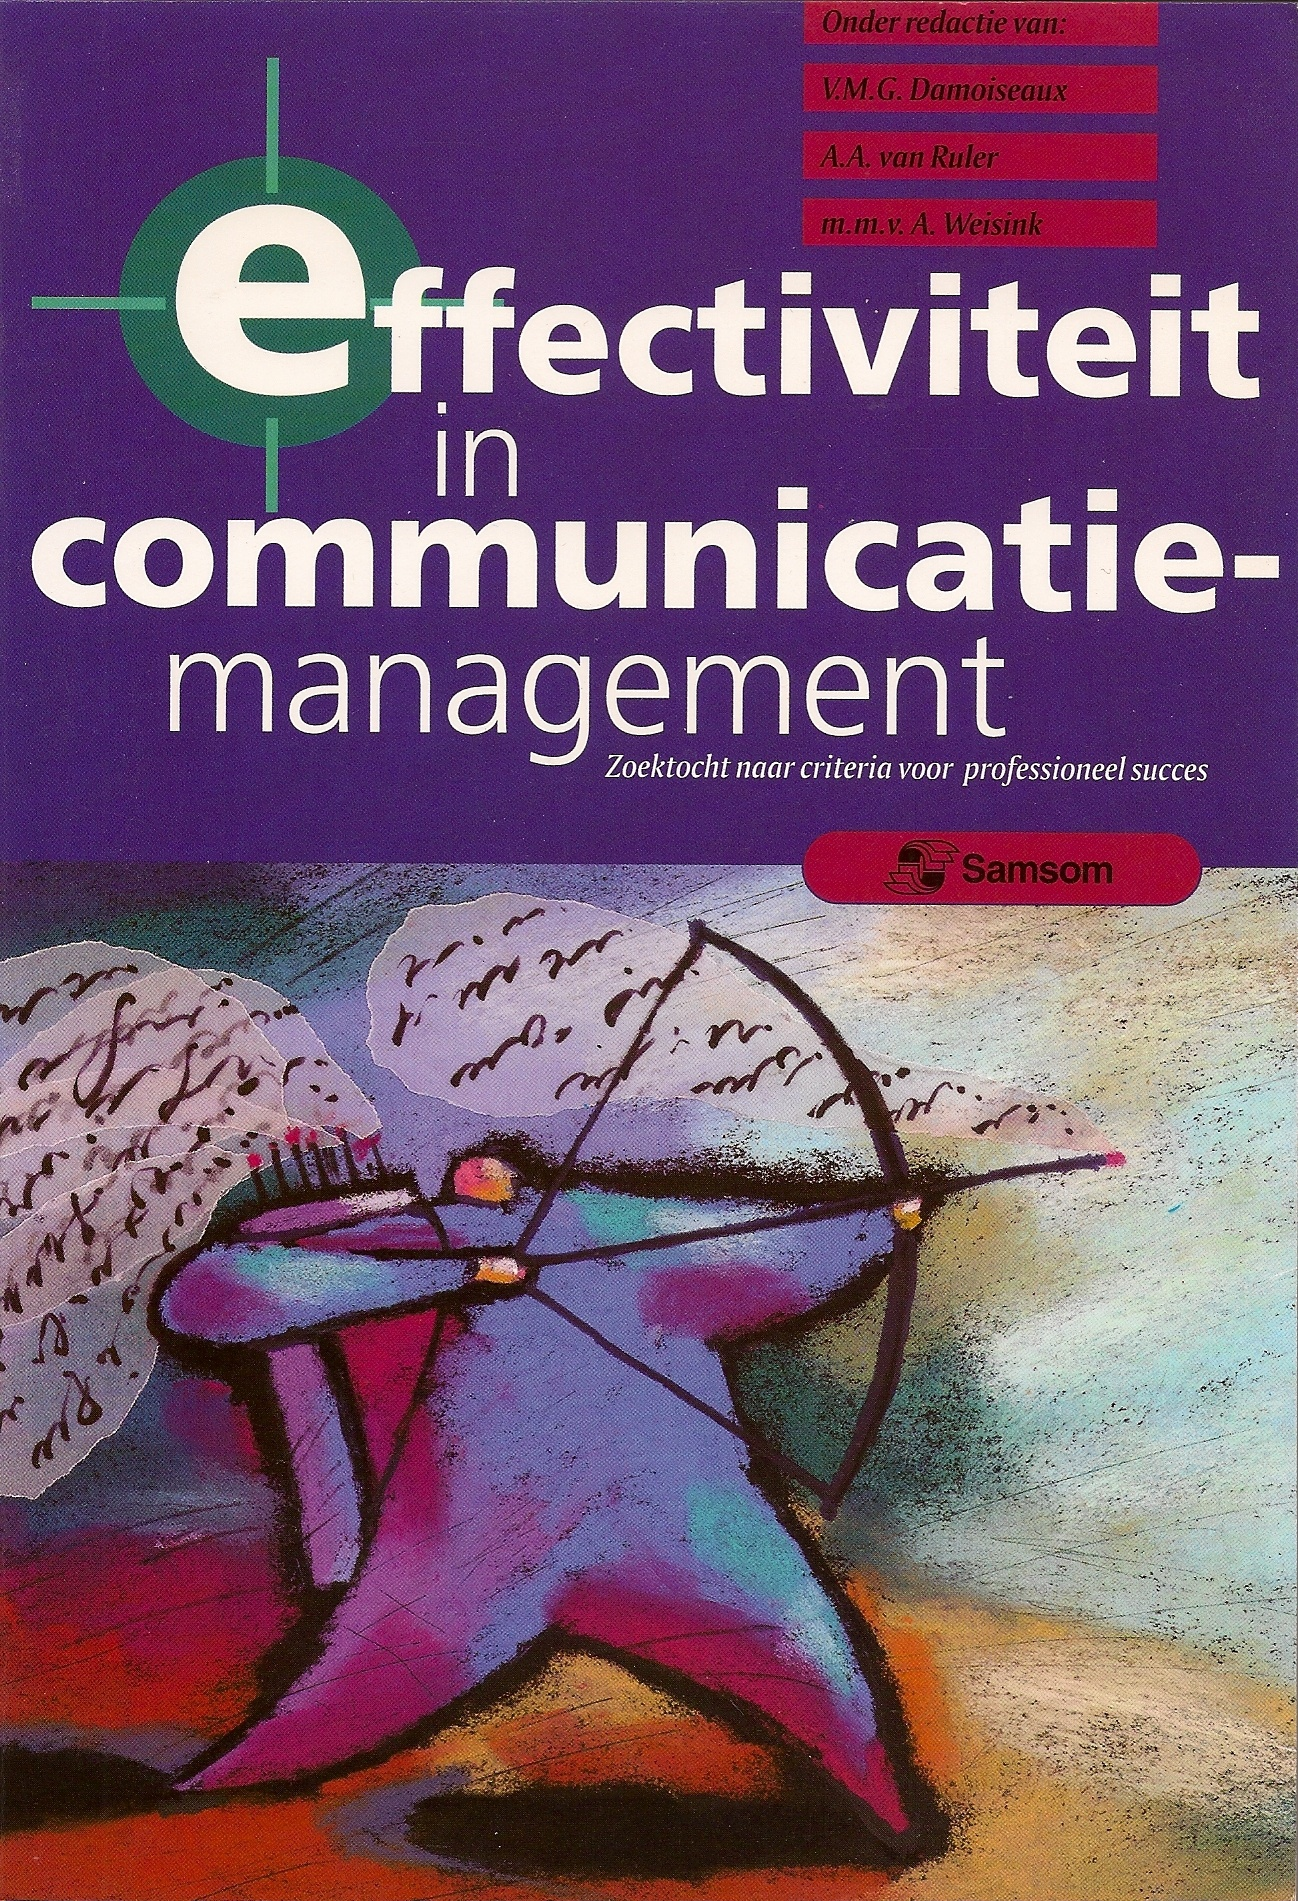 Effectiviteit in communicatie-management